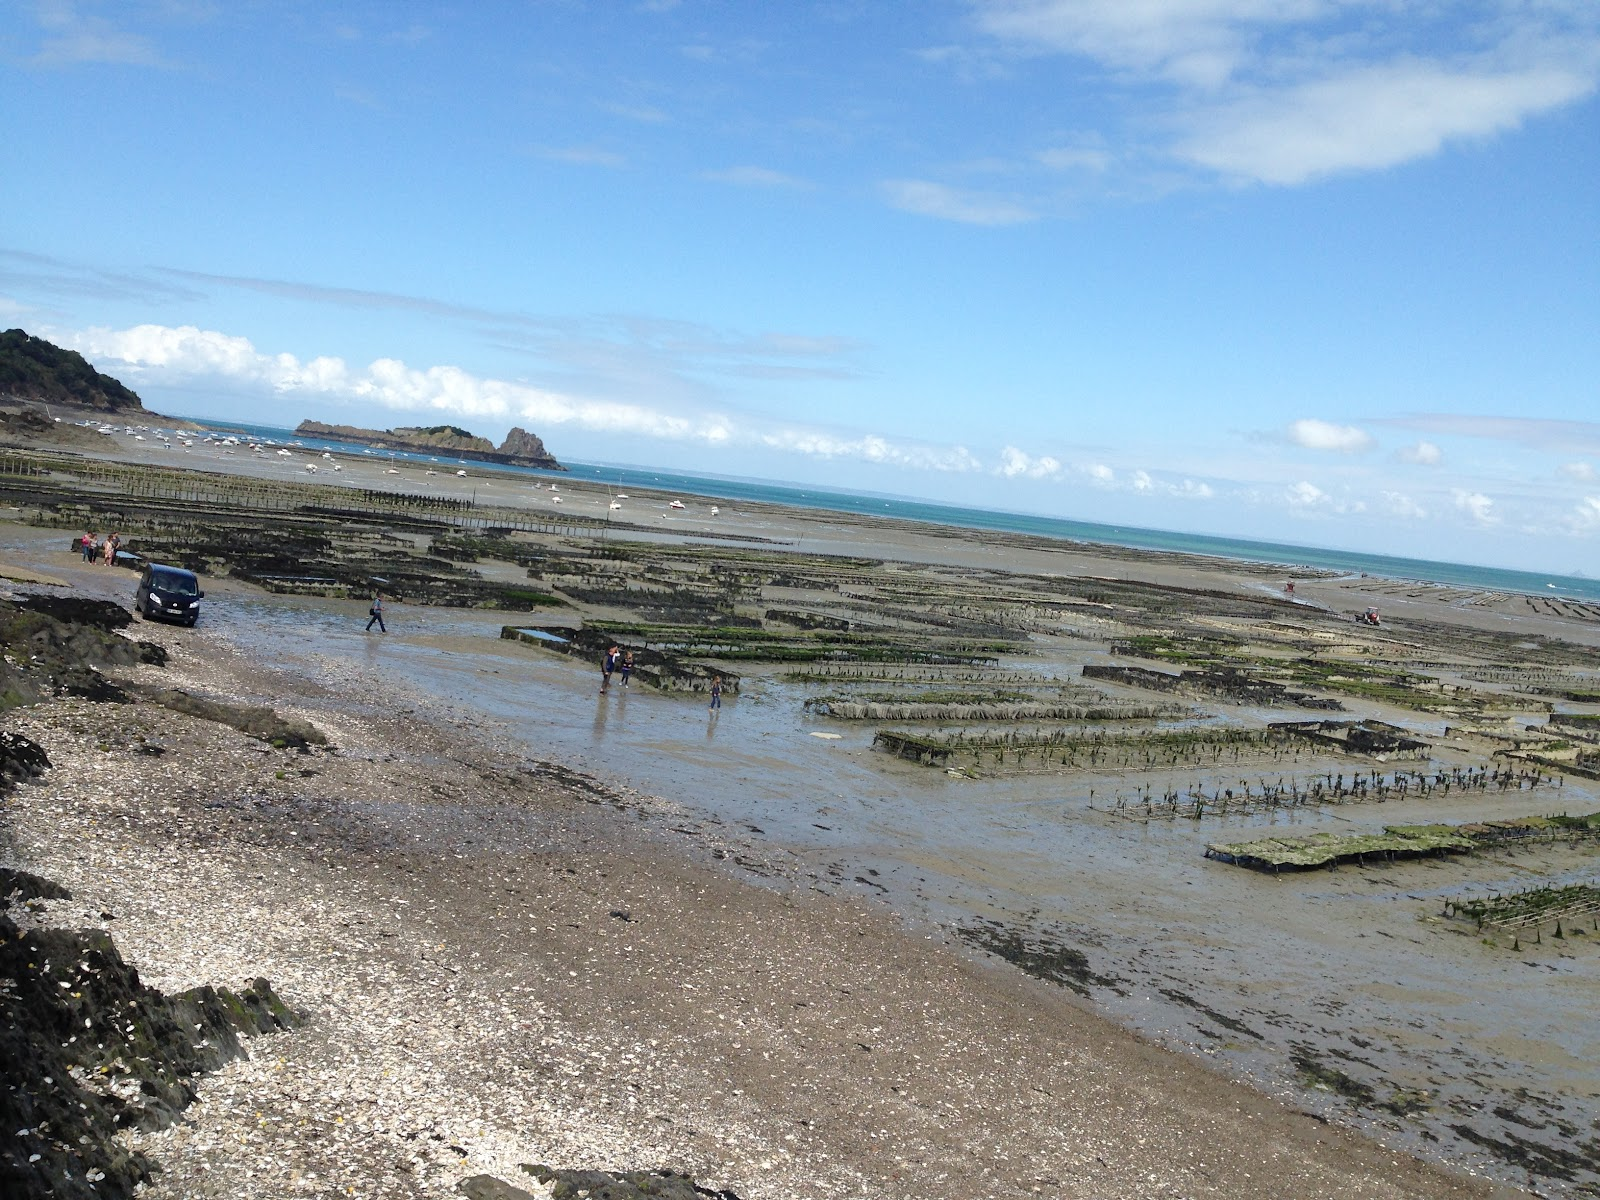 cancale france shoreside oyster farm by the ocean. Locals working on farm, parked minivan and ocean in the distance on a sunny day.